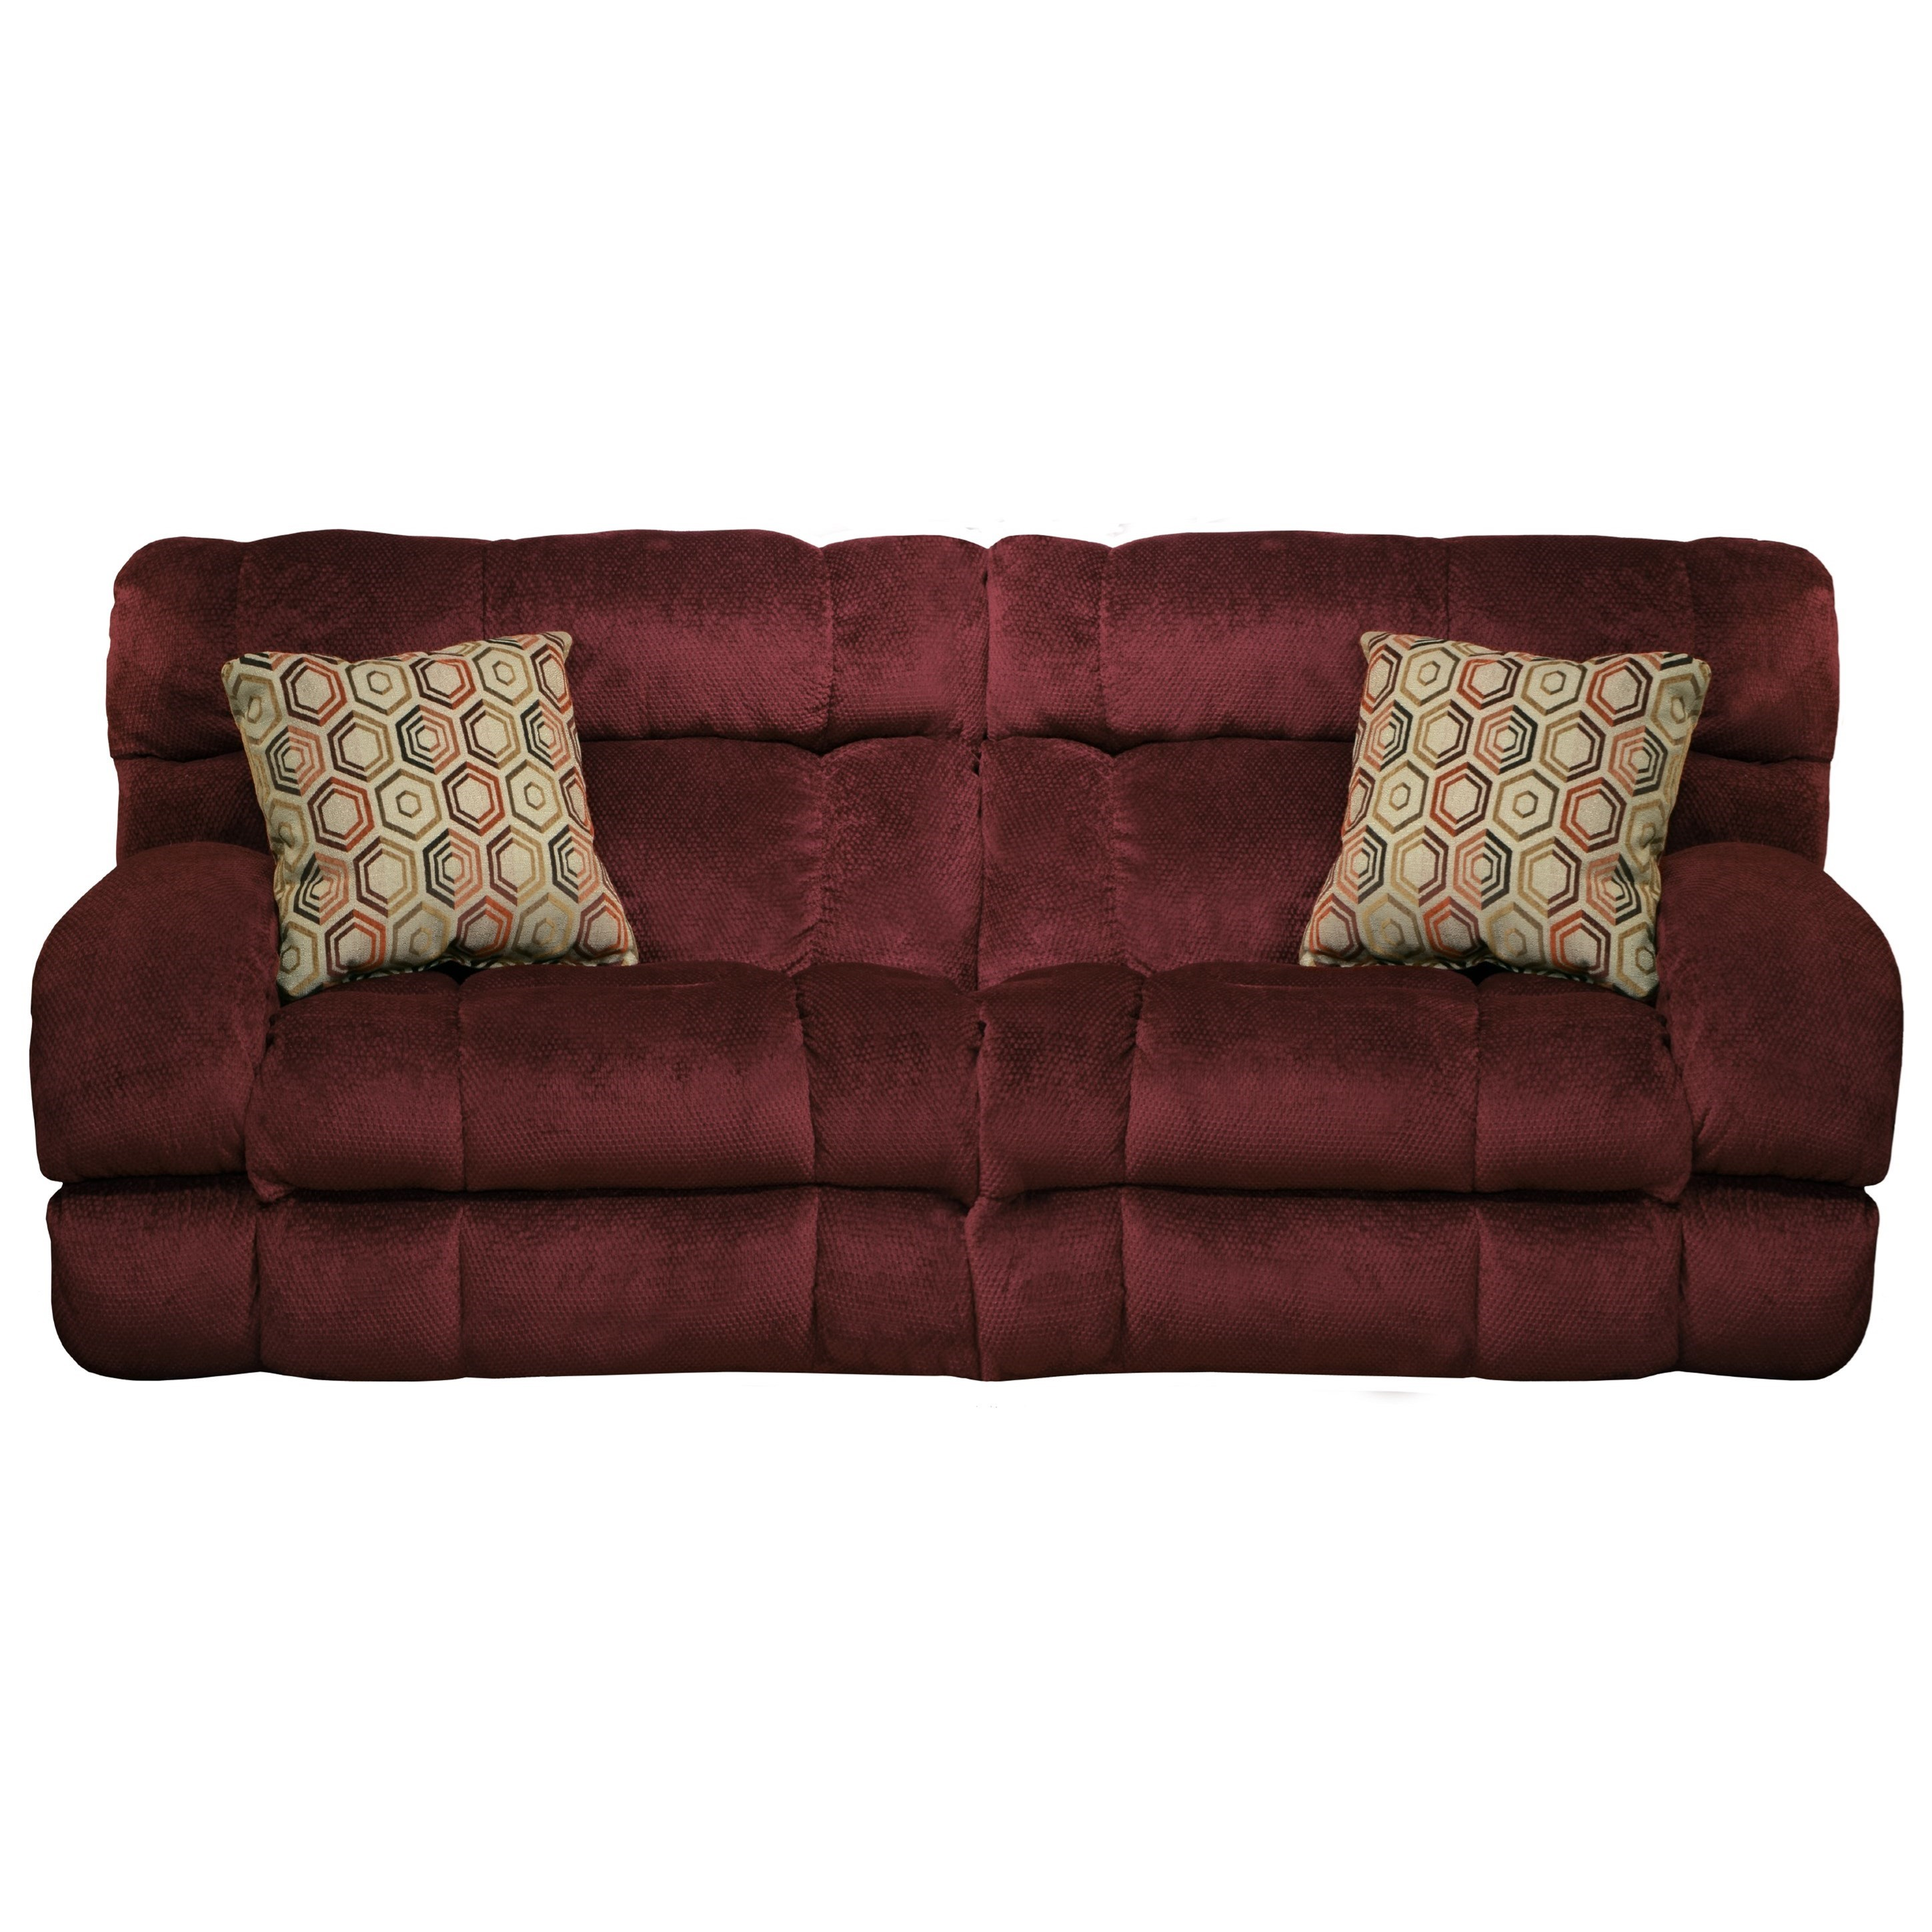 catnapper ranger reclining sectional sofa set bloomingdales sofas siesta lay flat with wide seats